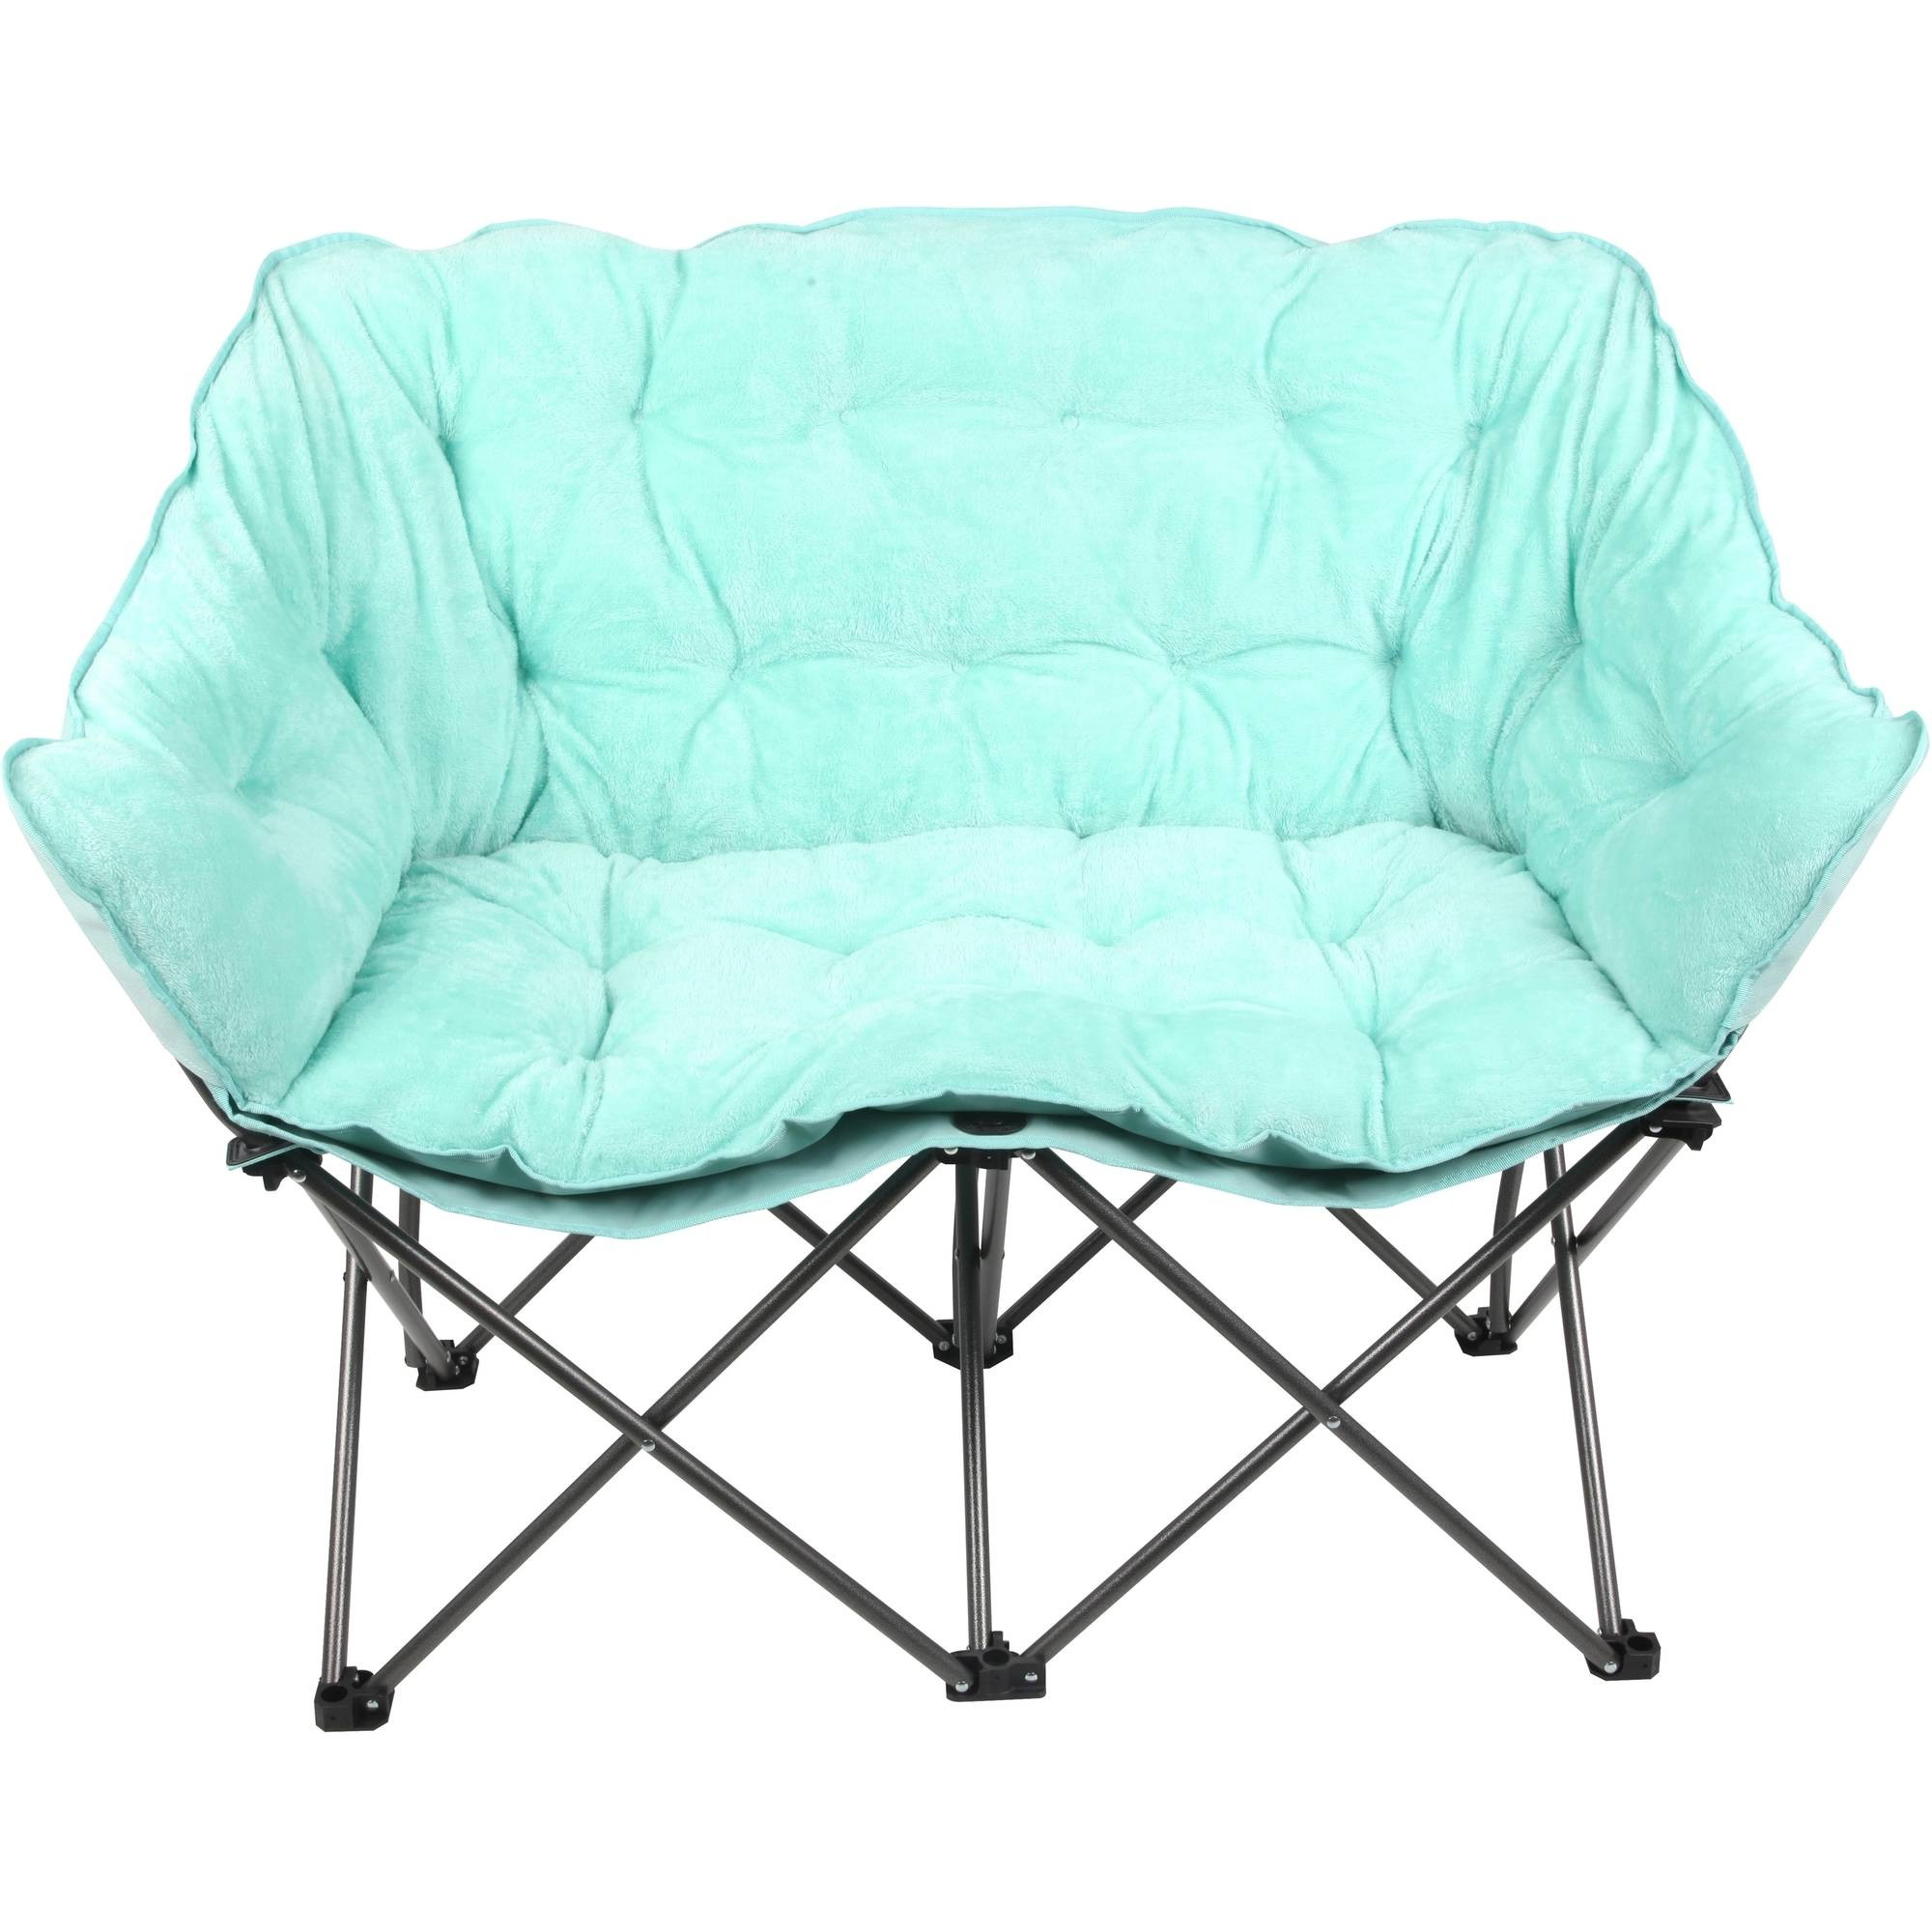 Mainstays Plush Loveseat Chair, Available in Multiple Colors